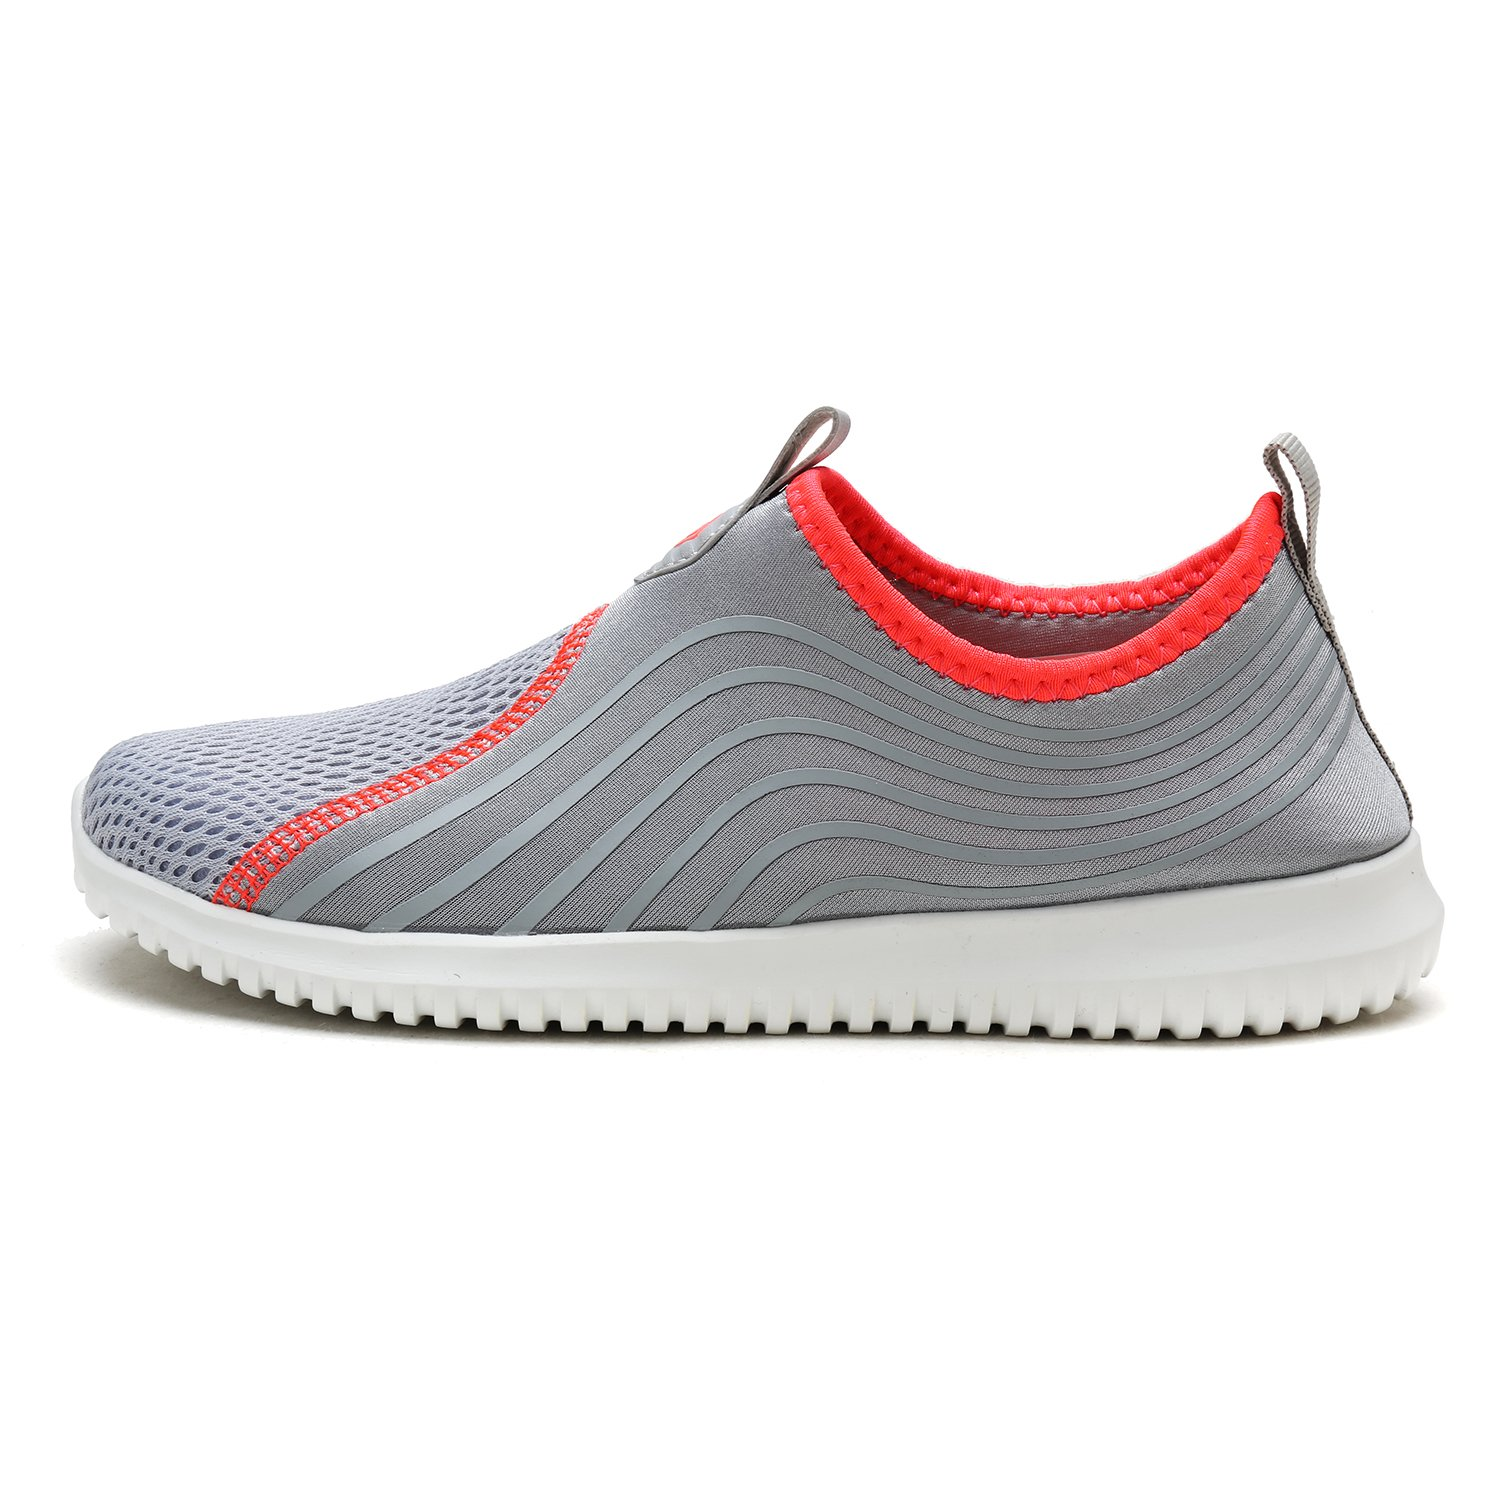 DREAM PAIRS Quick-Dry Water Shoes Sports Walking Casual Sneakers for Women B07888F1JT 5.5 M US|Lt.grey/Coral